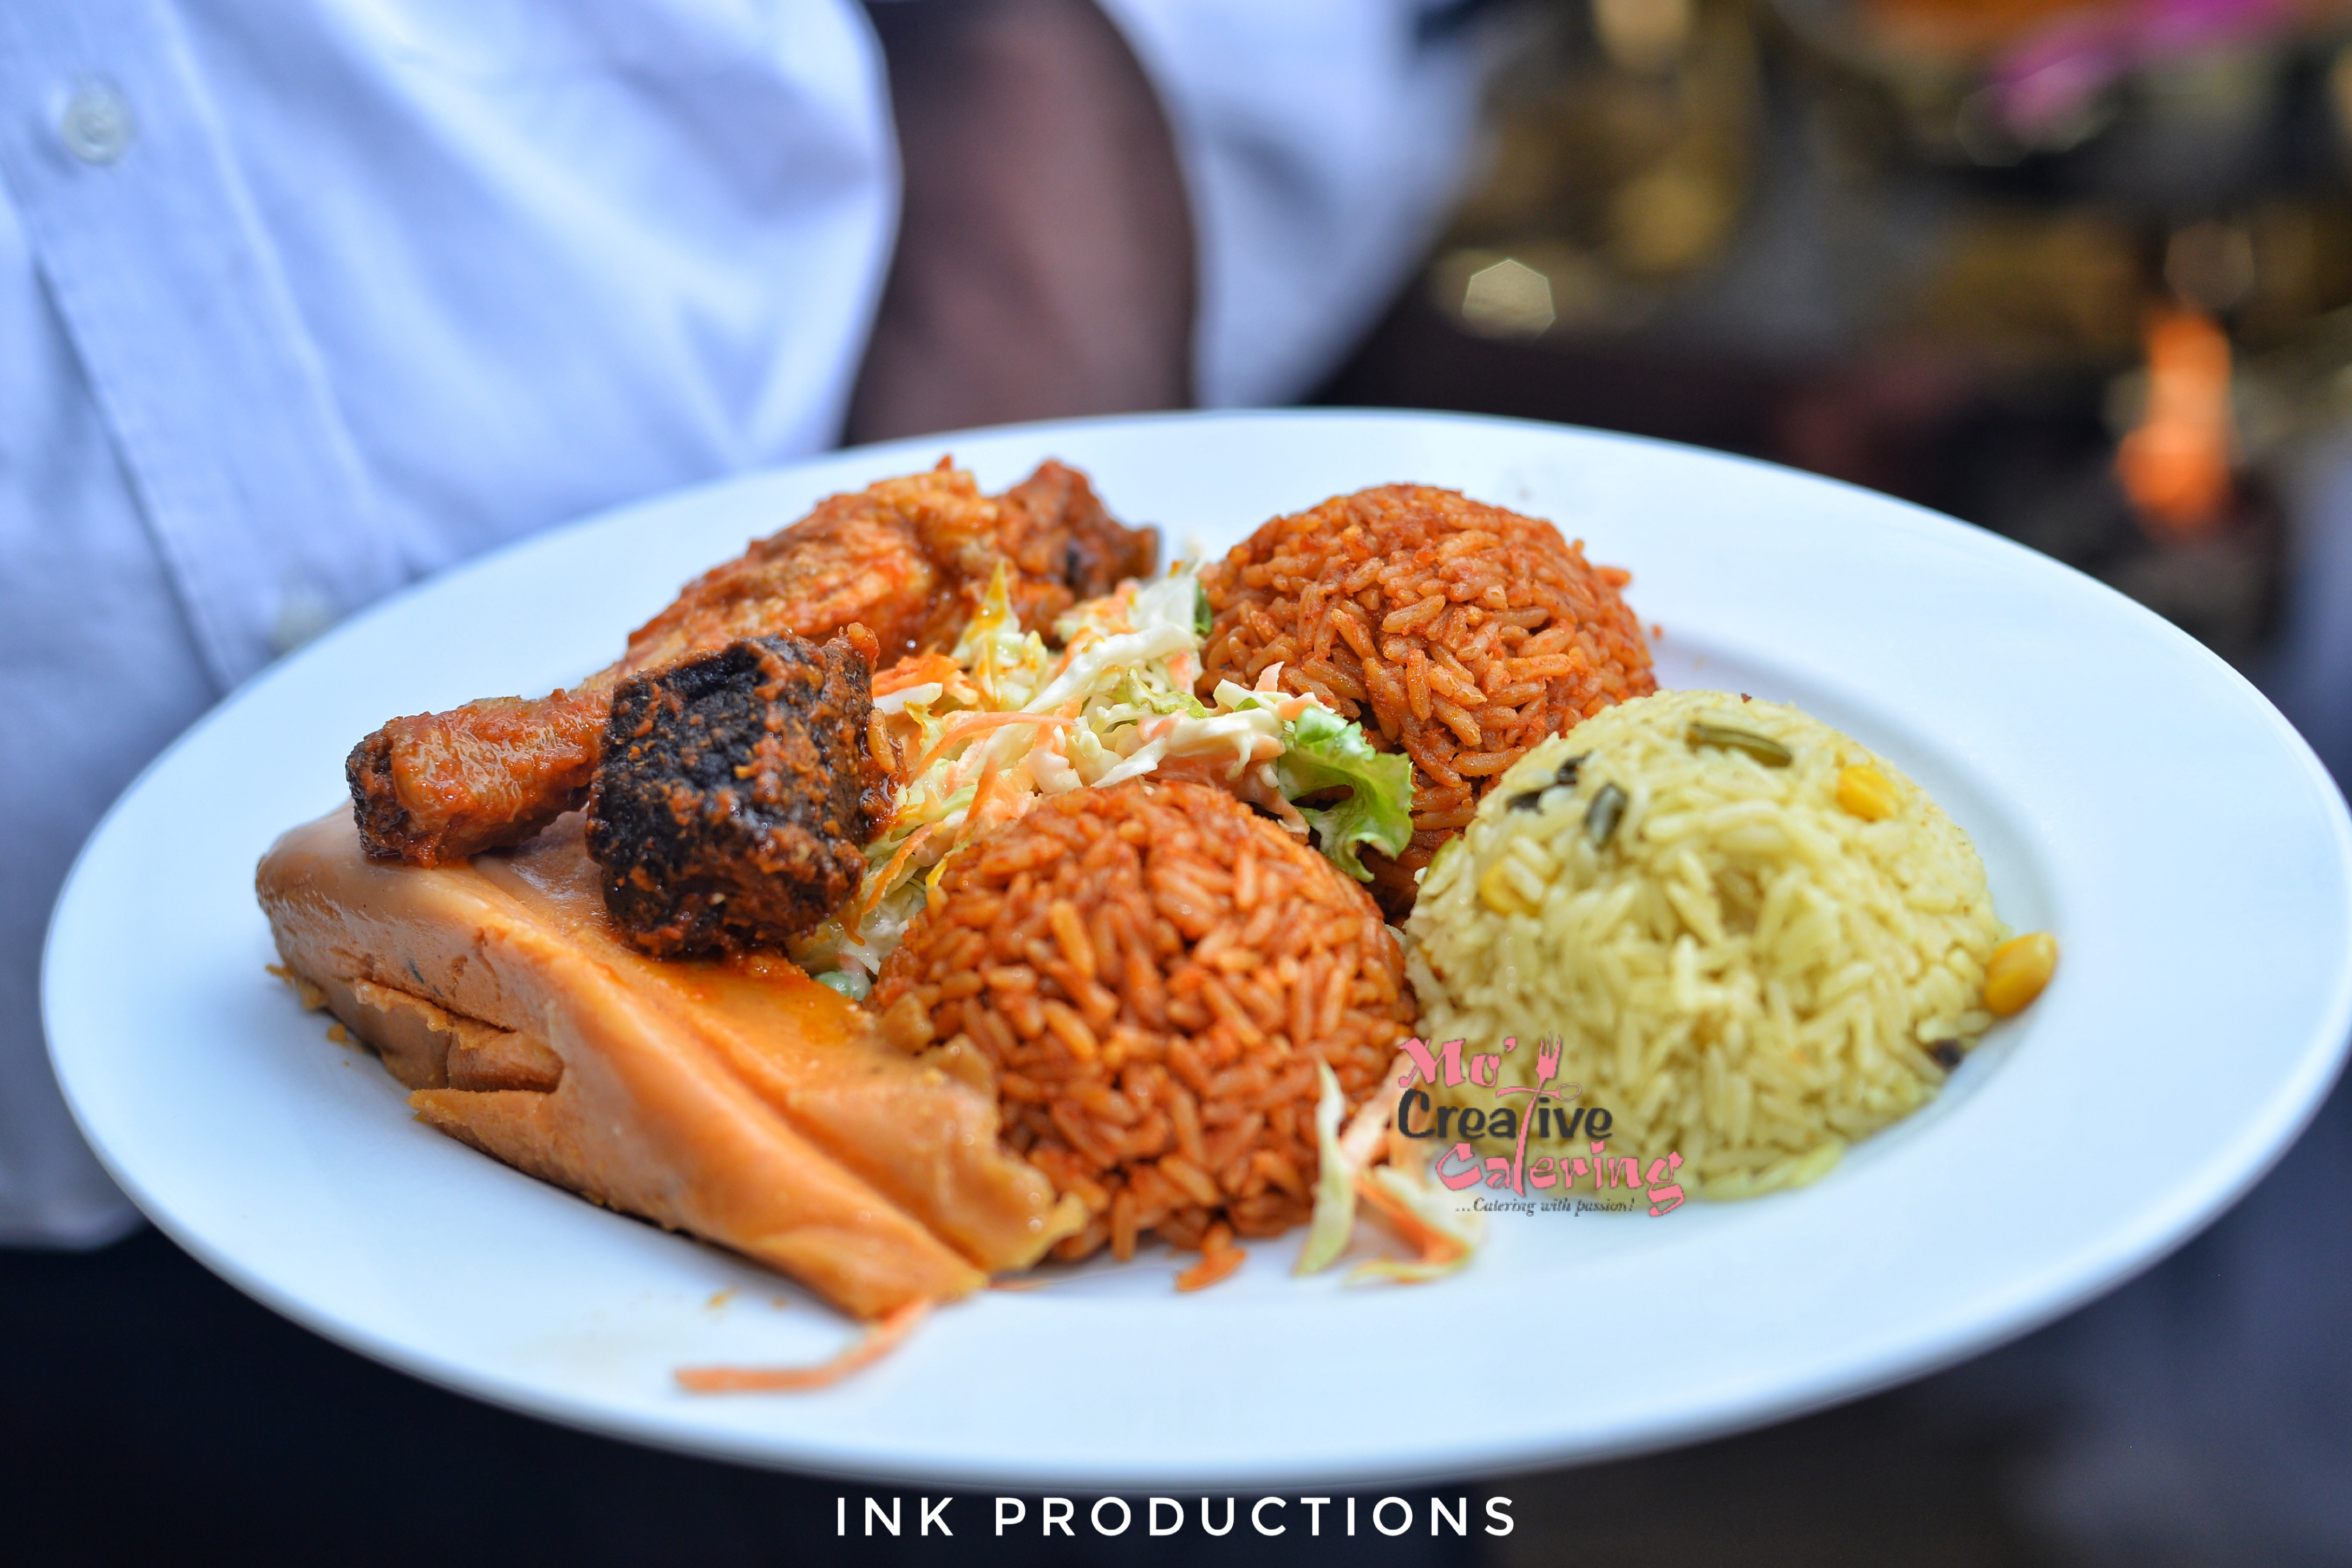 mo creative catering